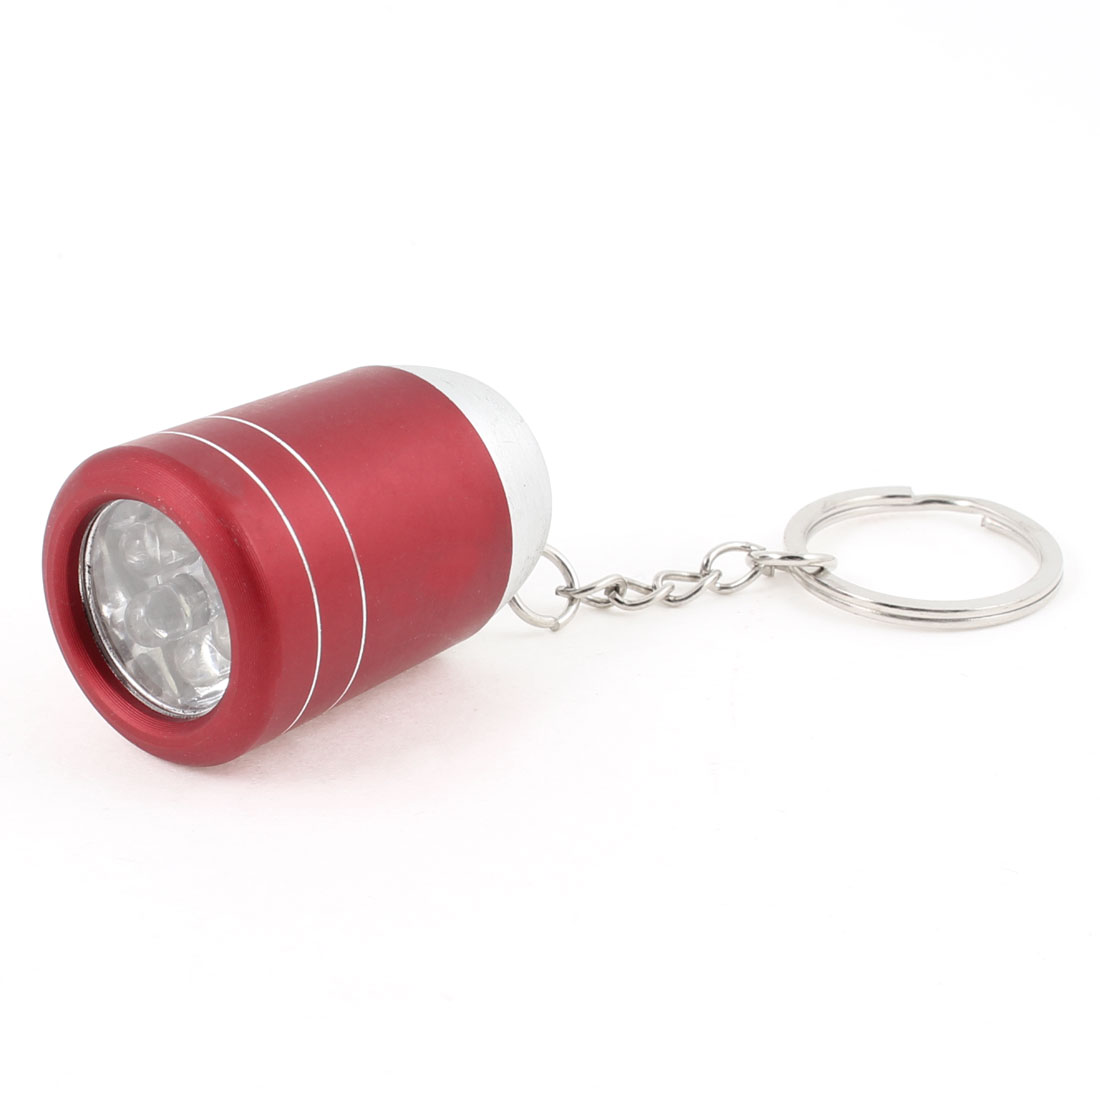 Red Press Button 6 White LED Pocket Flashlight Torch Lamp Light + Key Ring